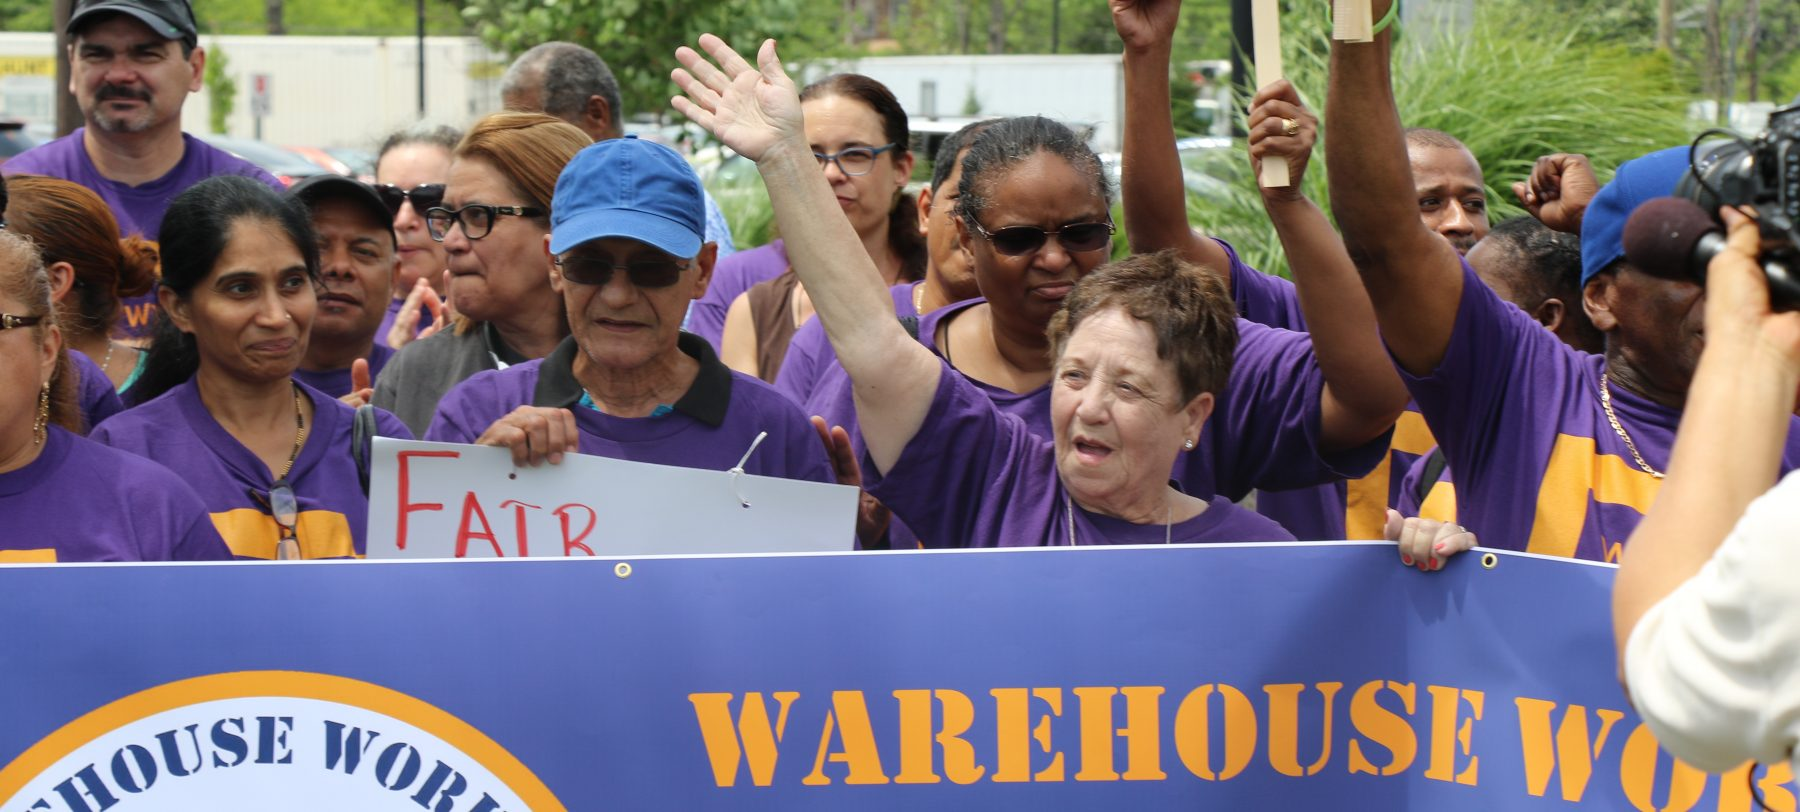 Warehouse Workers Standup